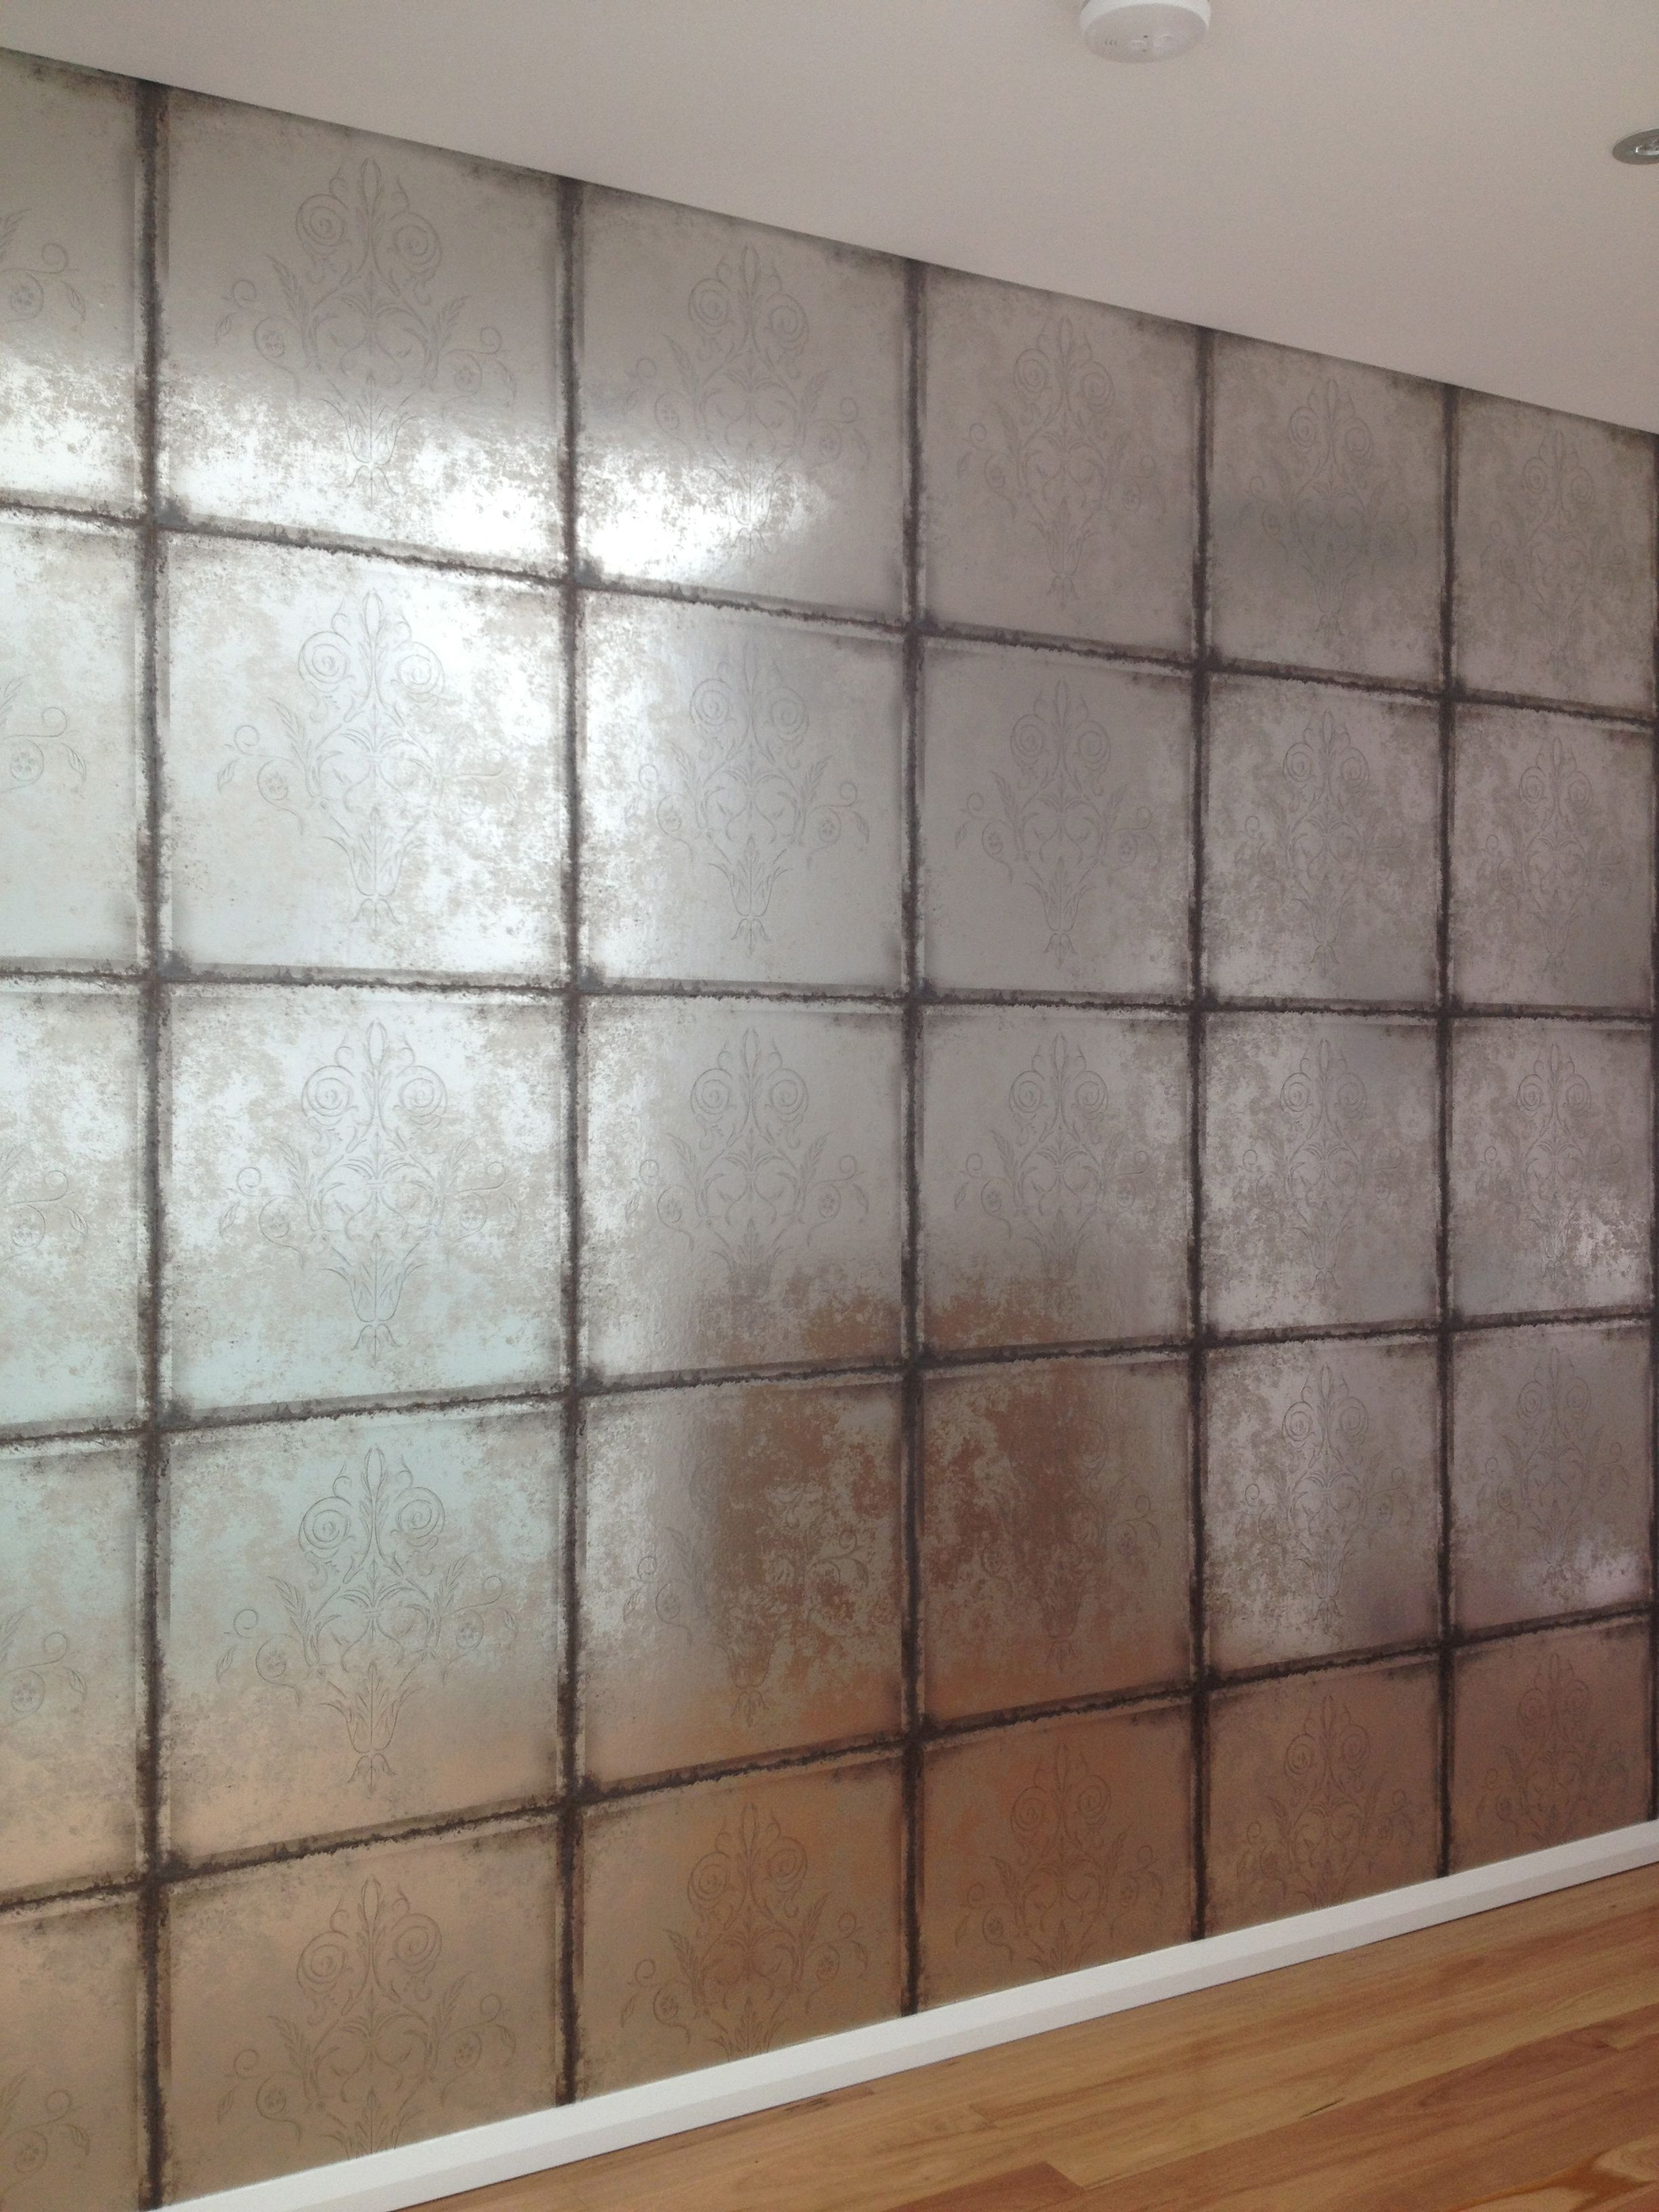 Wallpaper from Cole and Sons Silver foiled on a non woven base